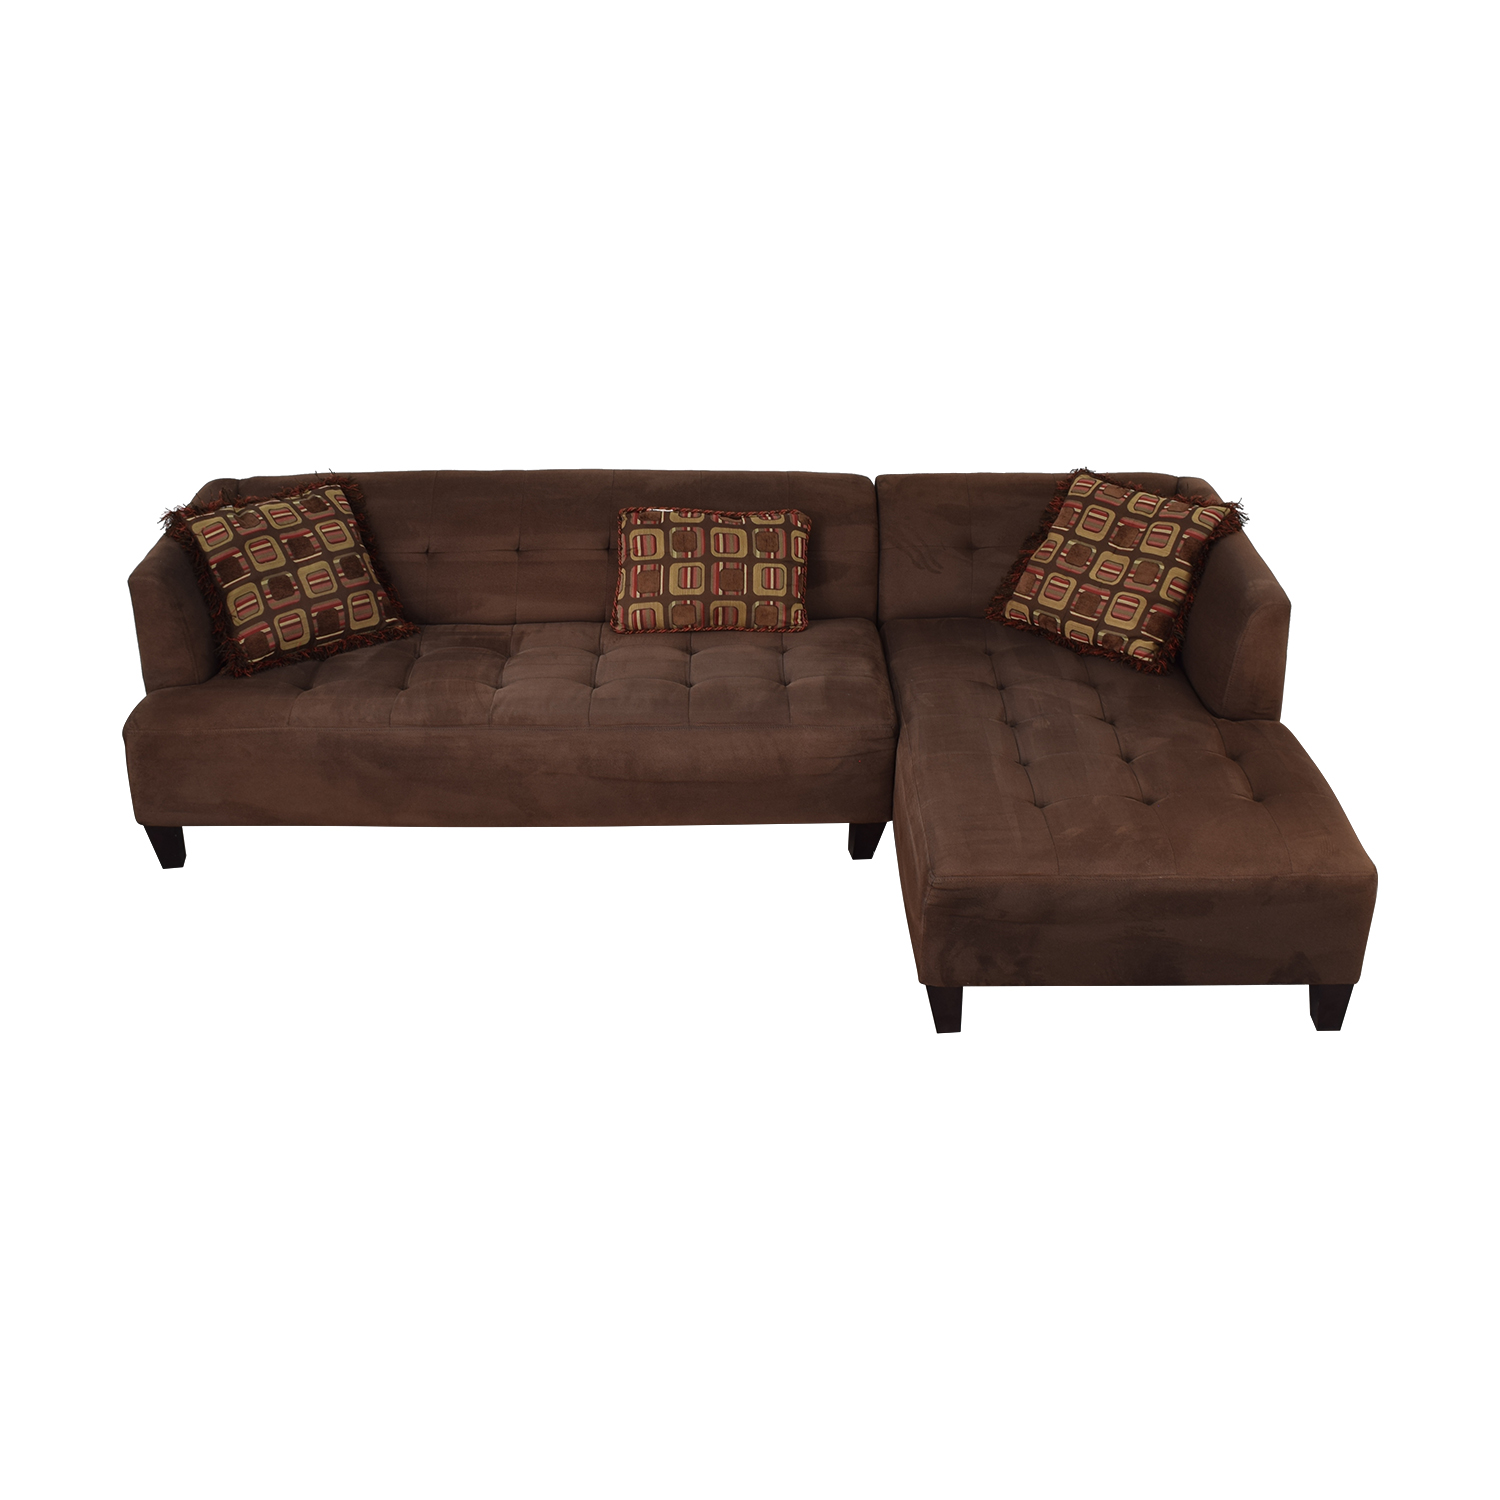 buy Macy's Brown Tufted Chaise  Sectional Macy's